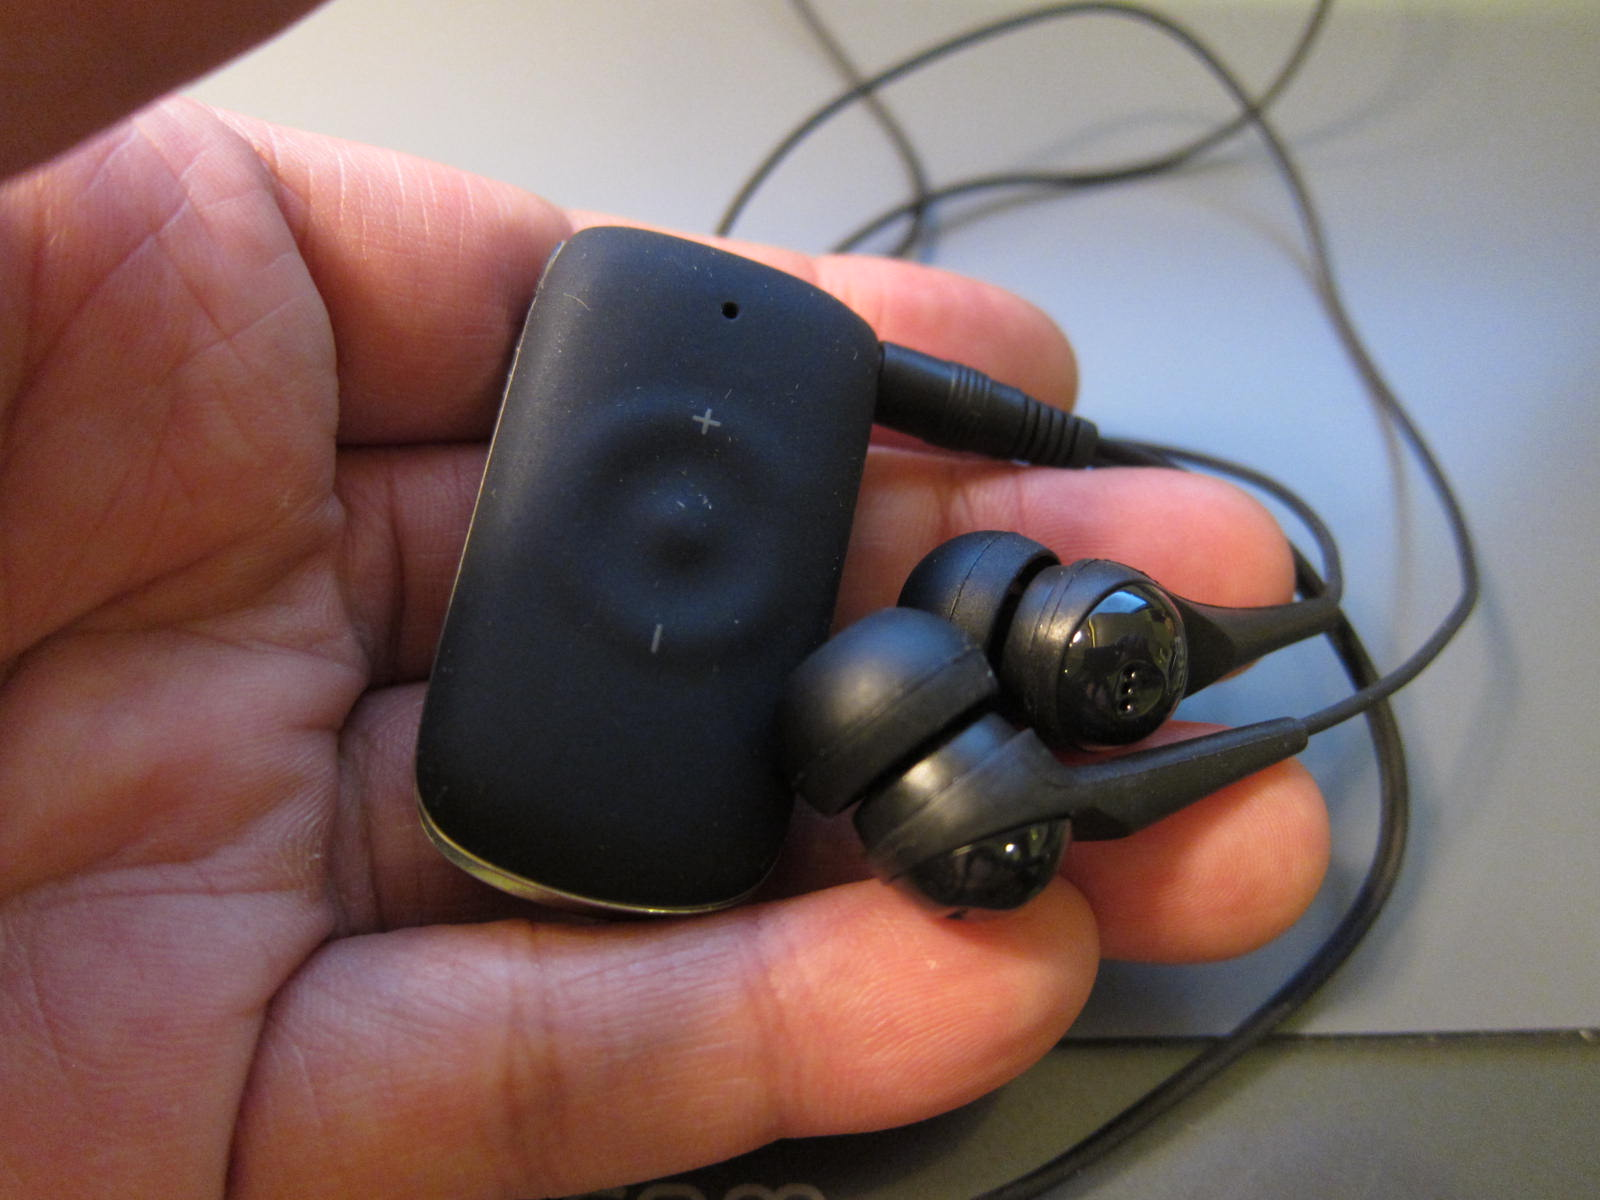 Jabra CLIPPER Review